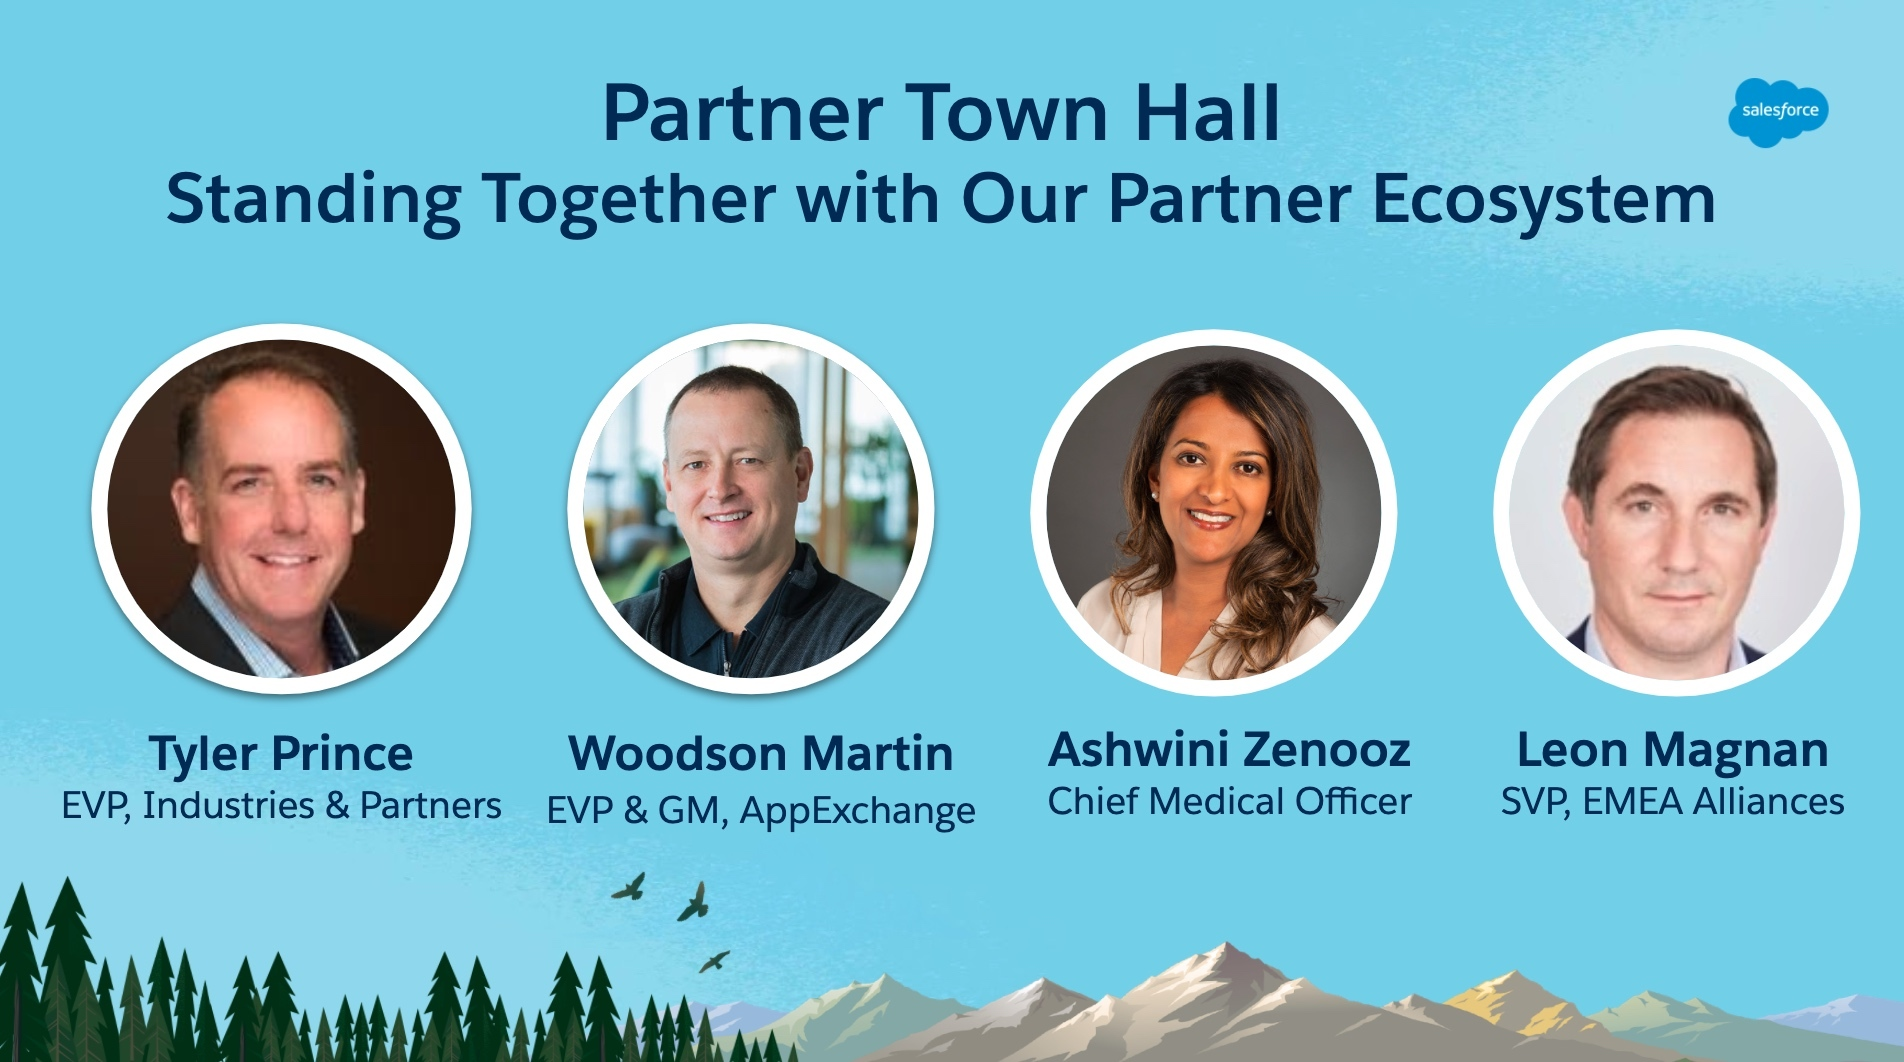 Partner Town Hall: Standing Together with our Partner Ecosystem